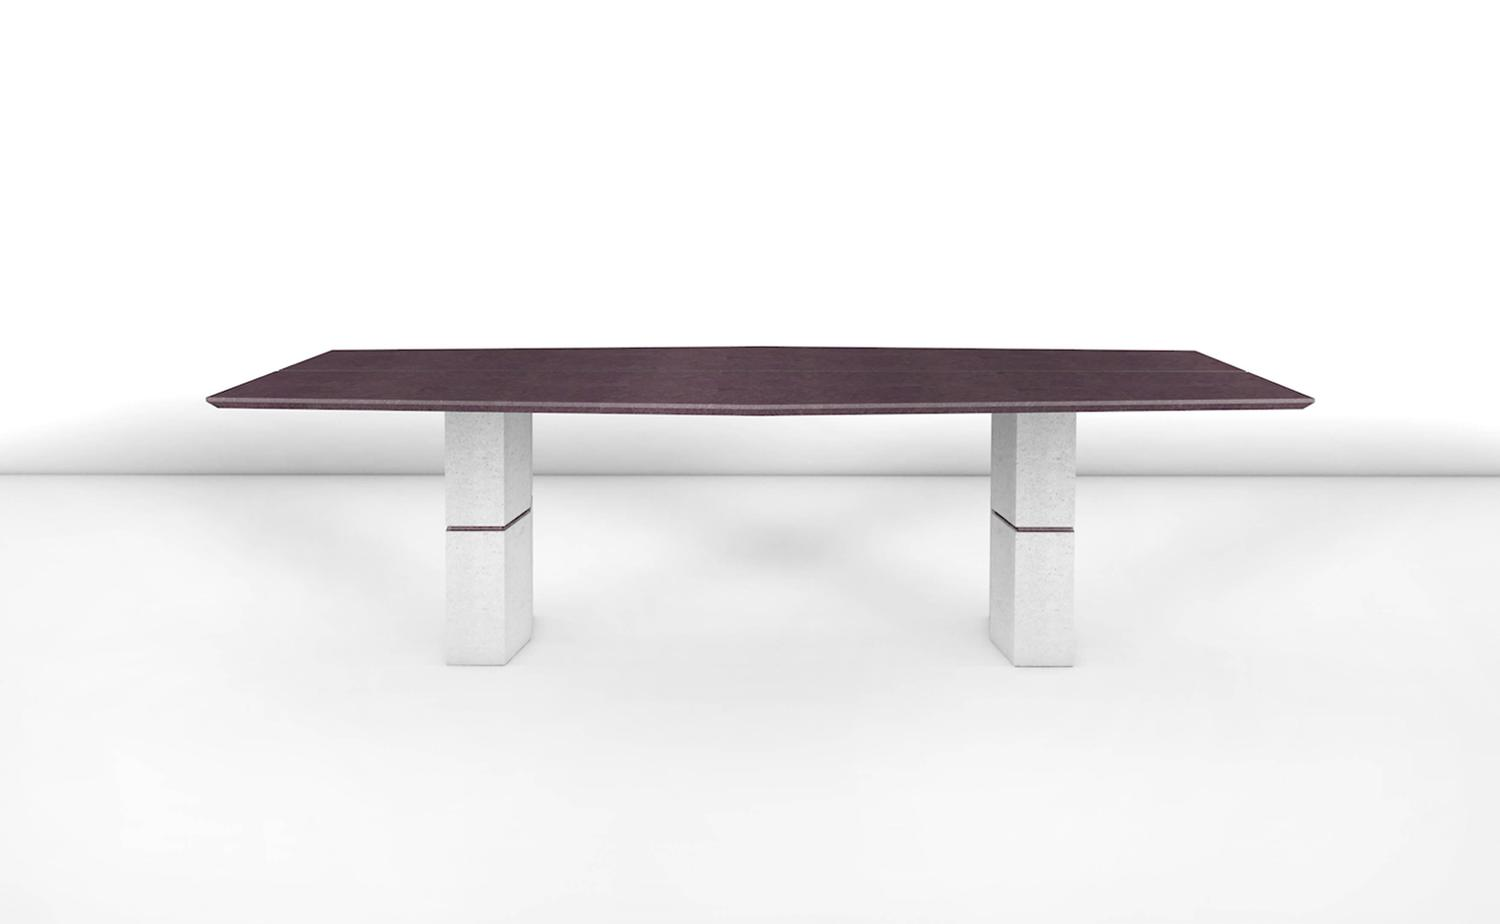 Fr d ric saulou unique dining table in purple slate for for Unusual dining tables for sale